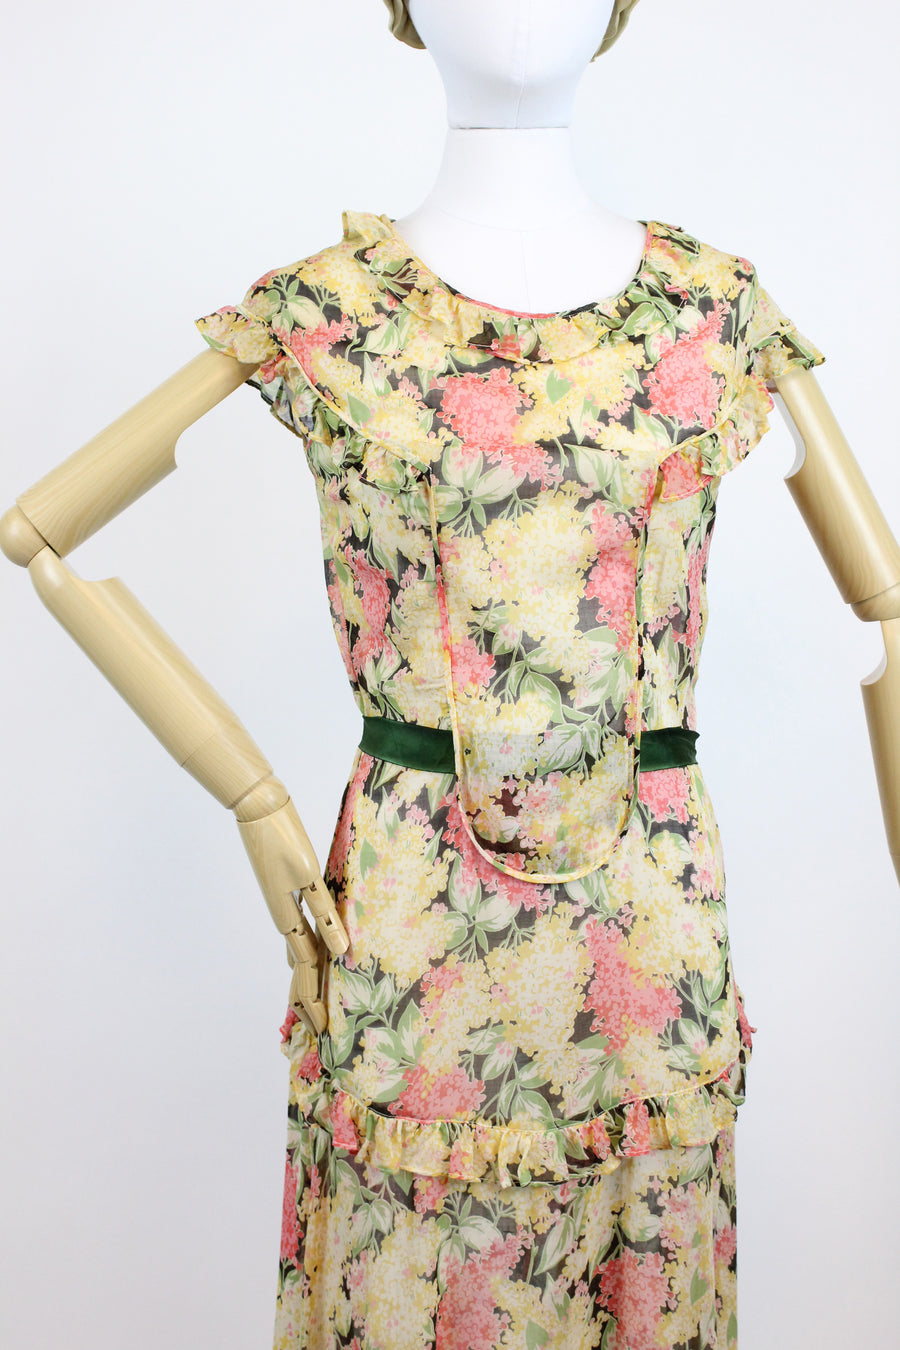 1930s dark floral dress xs small | vintage cotton floral gown | new in